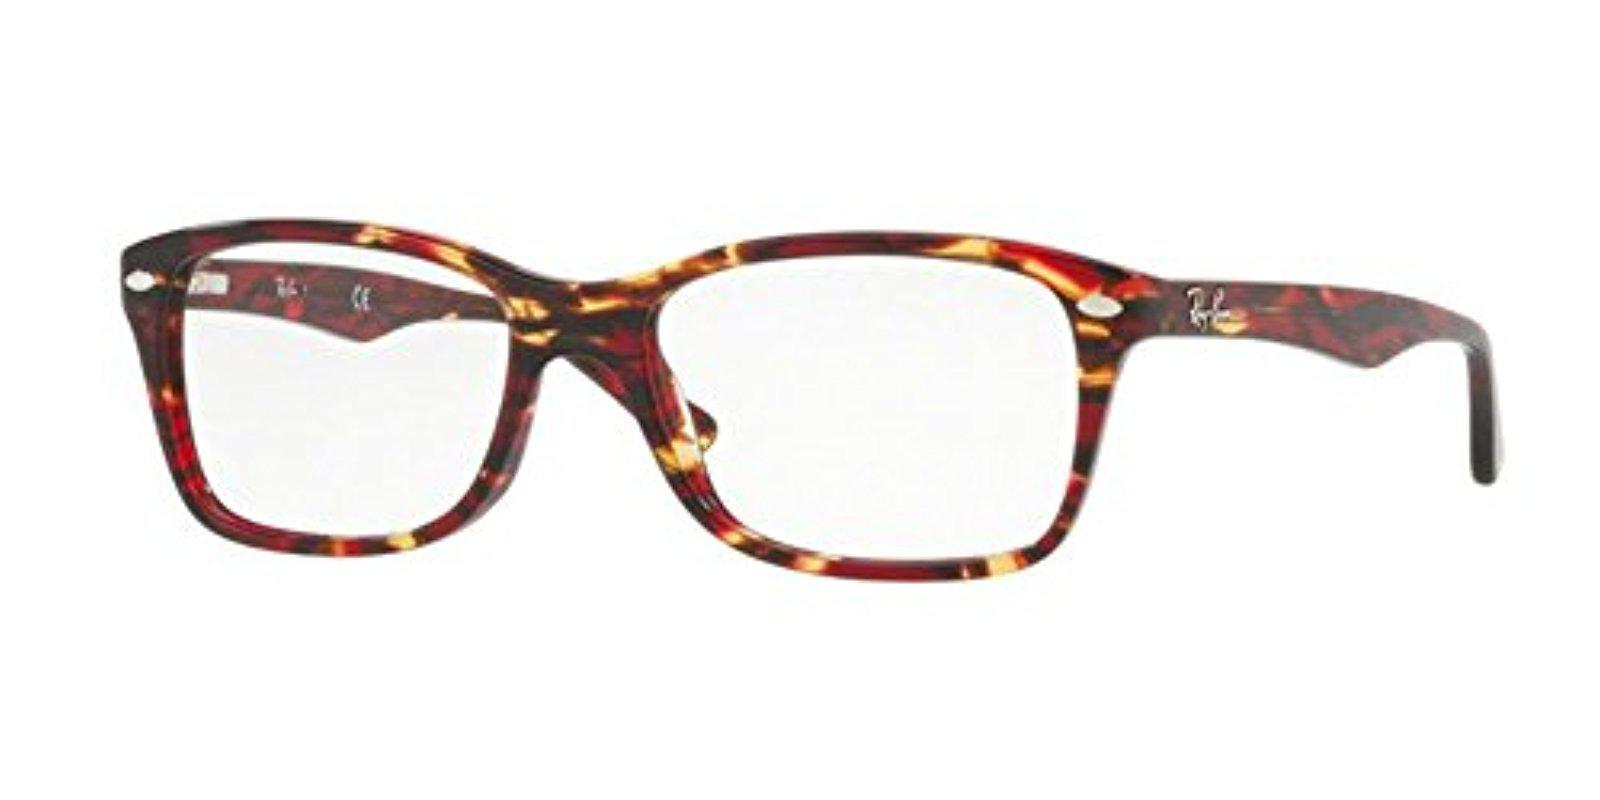 40dbc6a30cb8d Lyst - Ray-Ban Rx5228 Eyeglasses in Brown